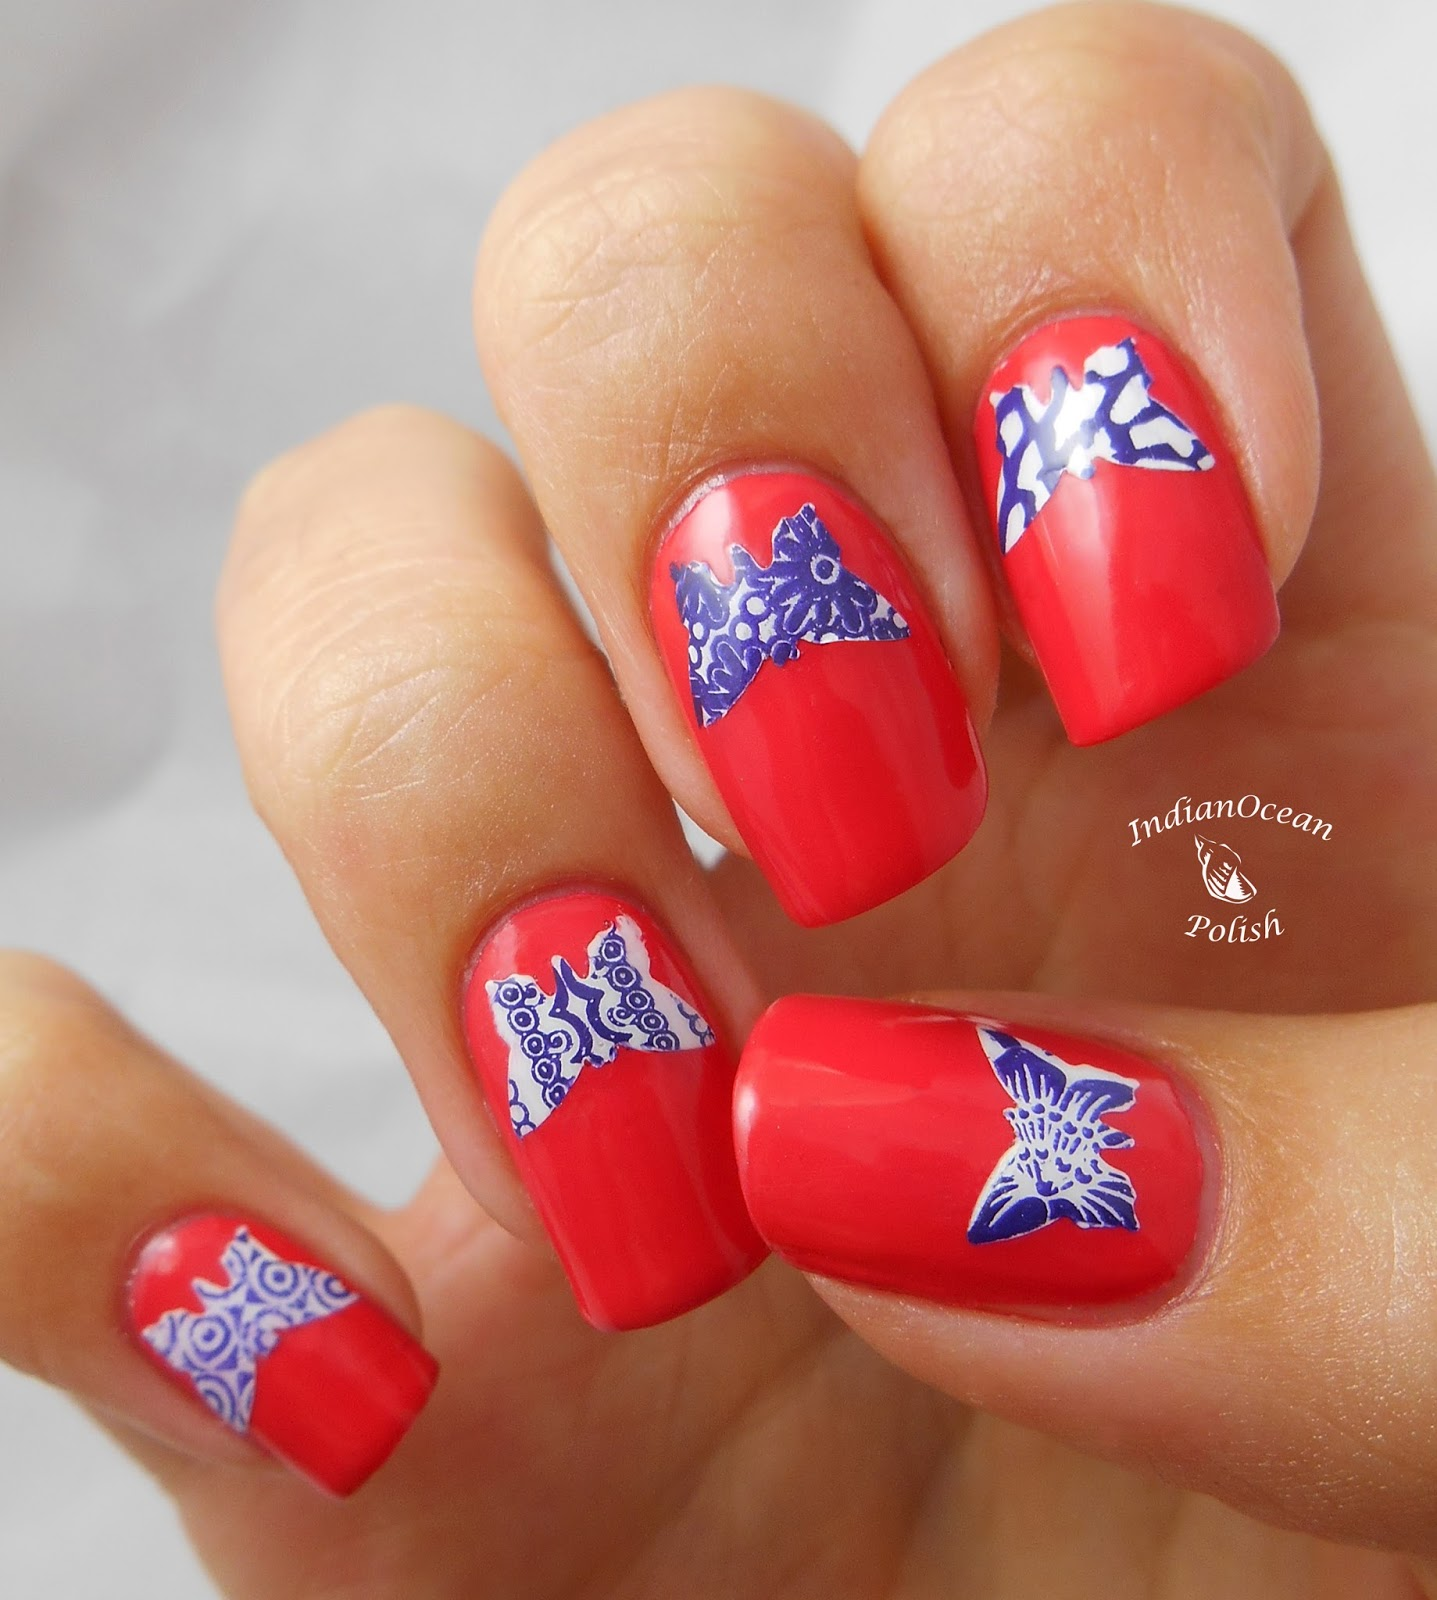 Indian Ocean Polish How To Make Your Own Nail Decals Part - How to make nail decals at home